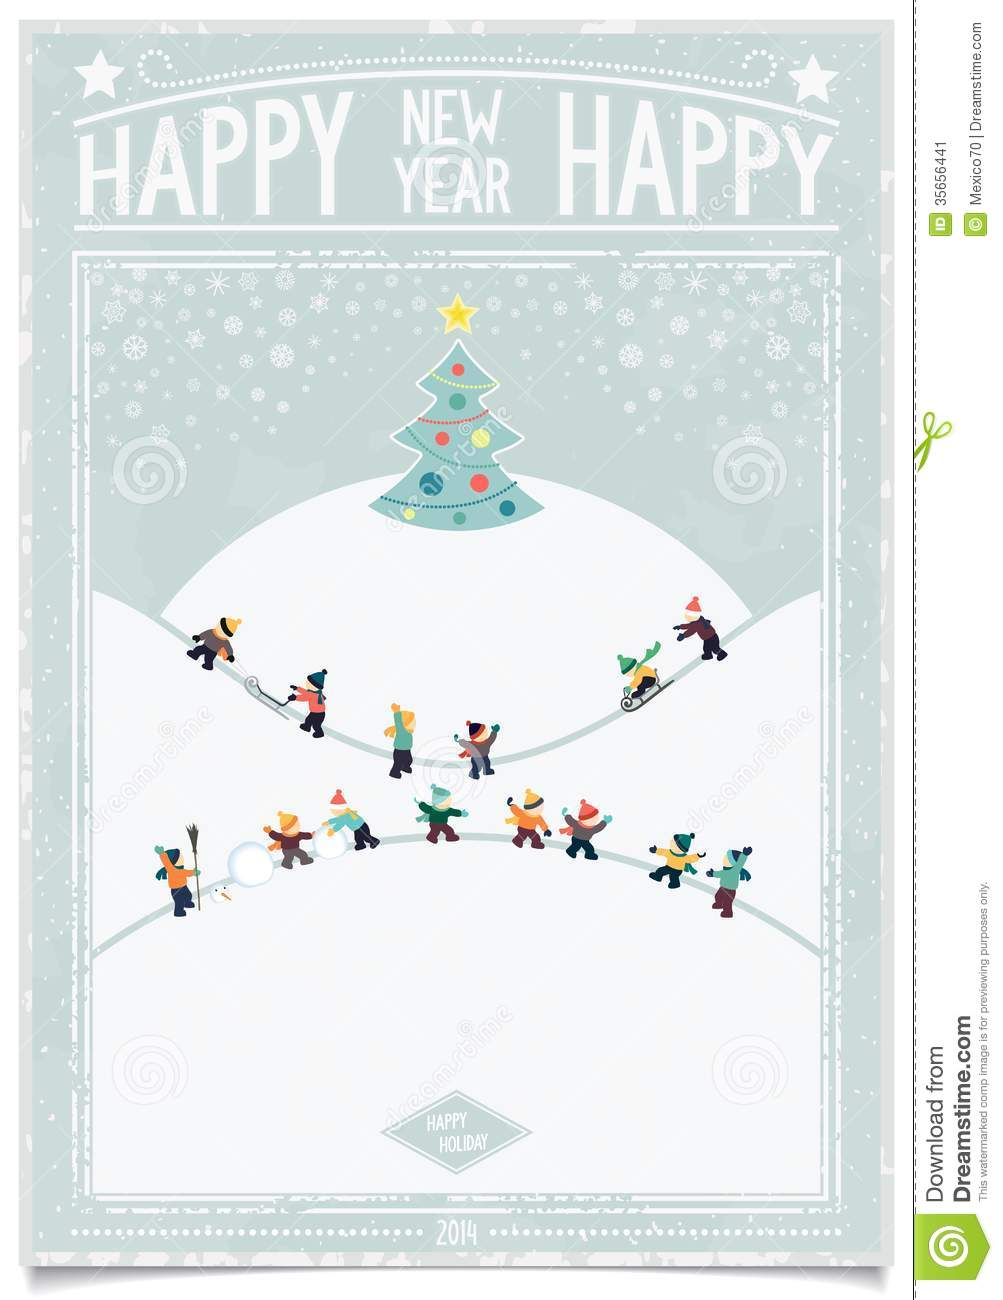 vintage new year card with playing child